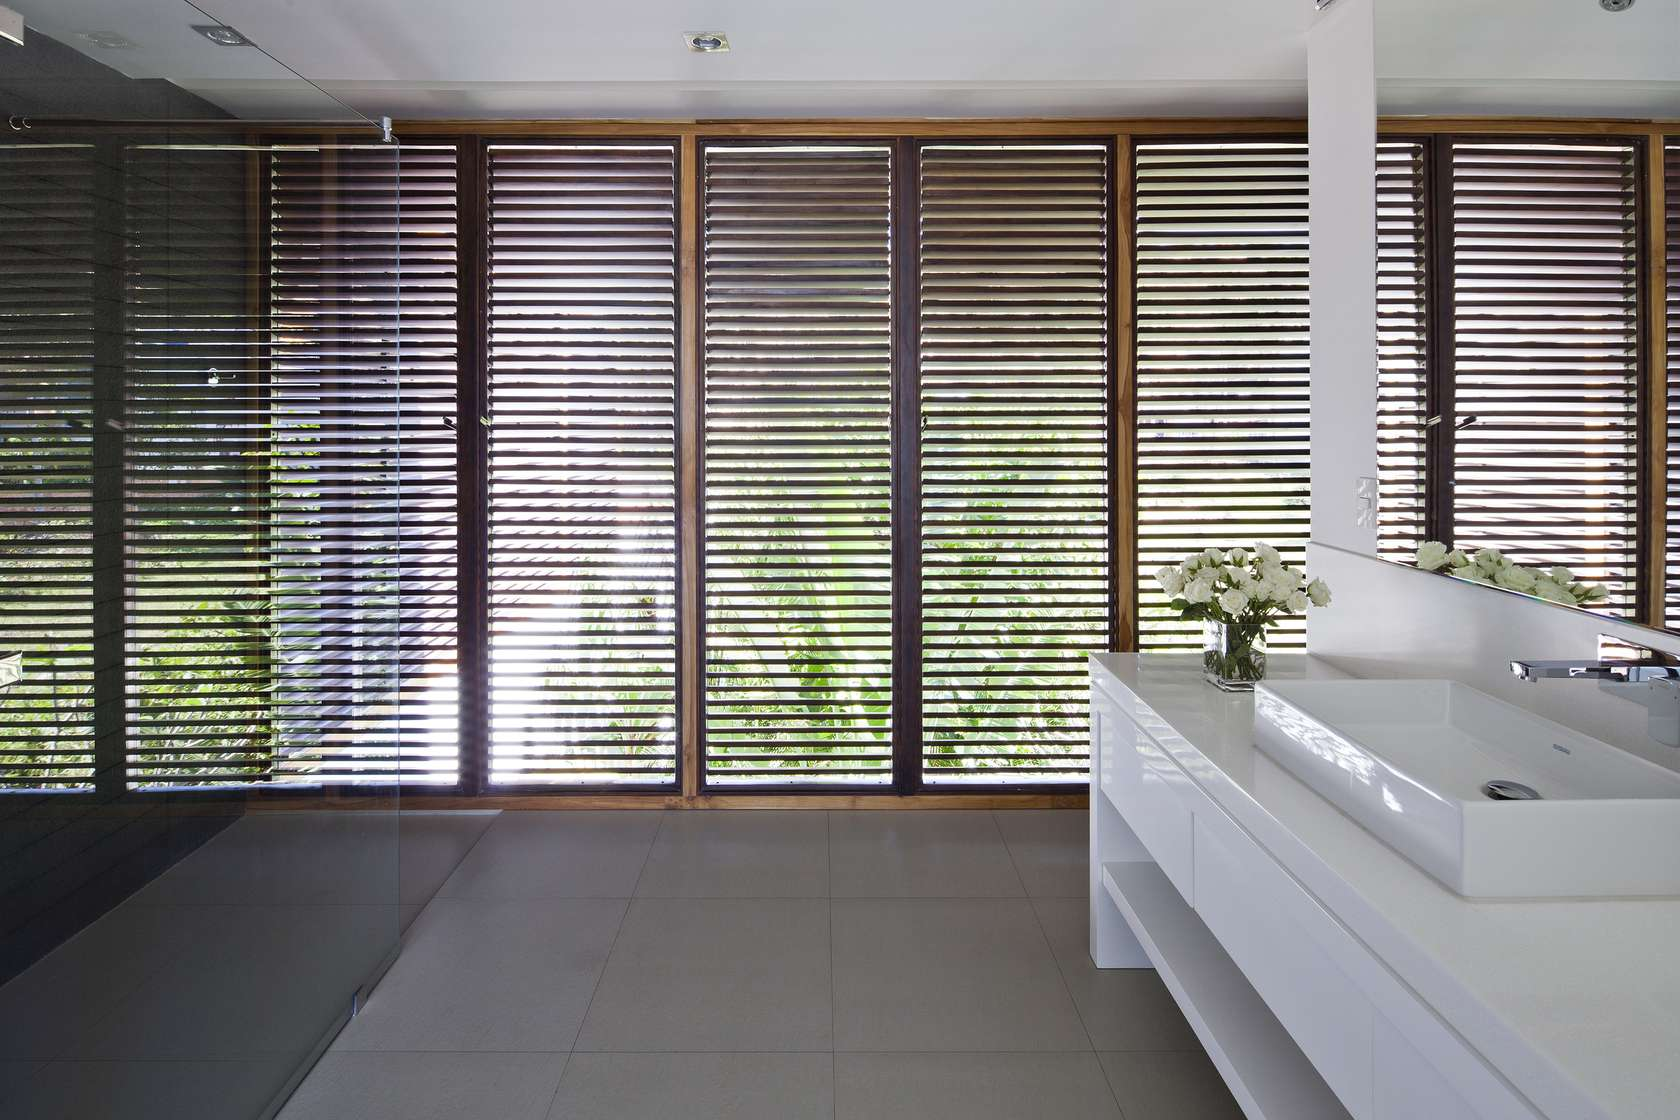 Oceanique-Villas-Vietnam-bathroom-shutters